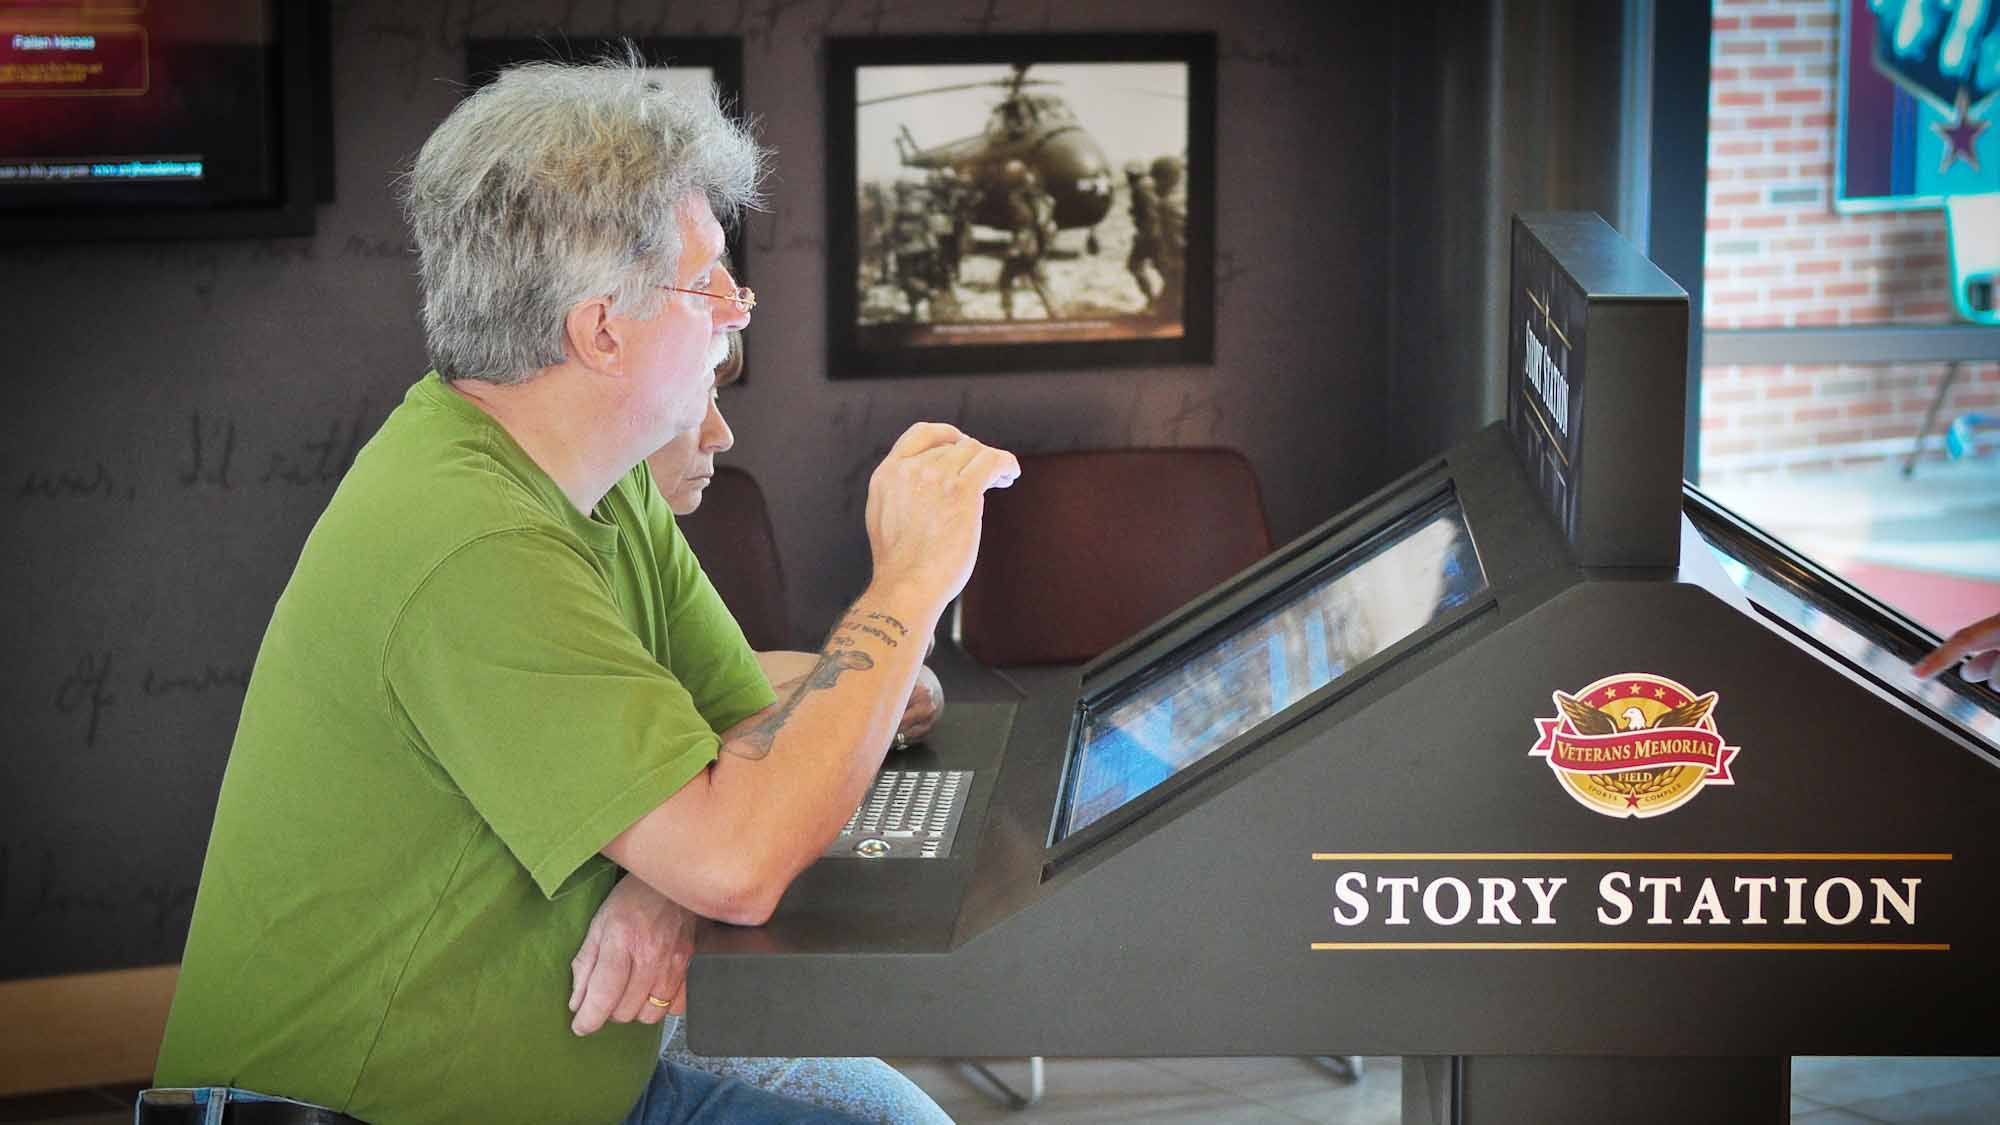 Couple interacting with story station media exhibit